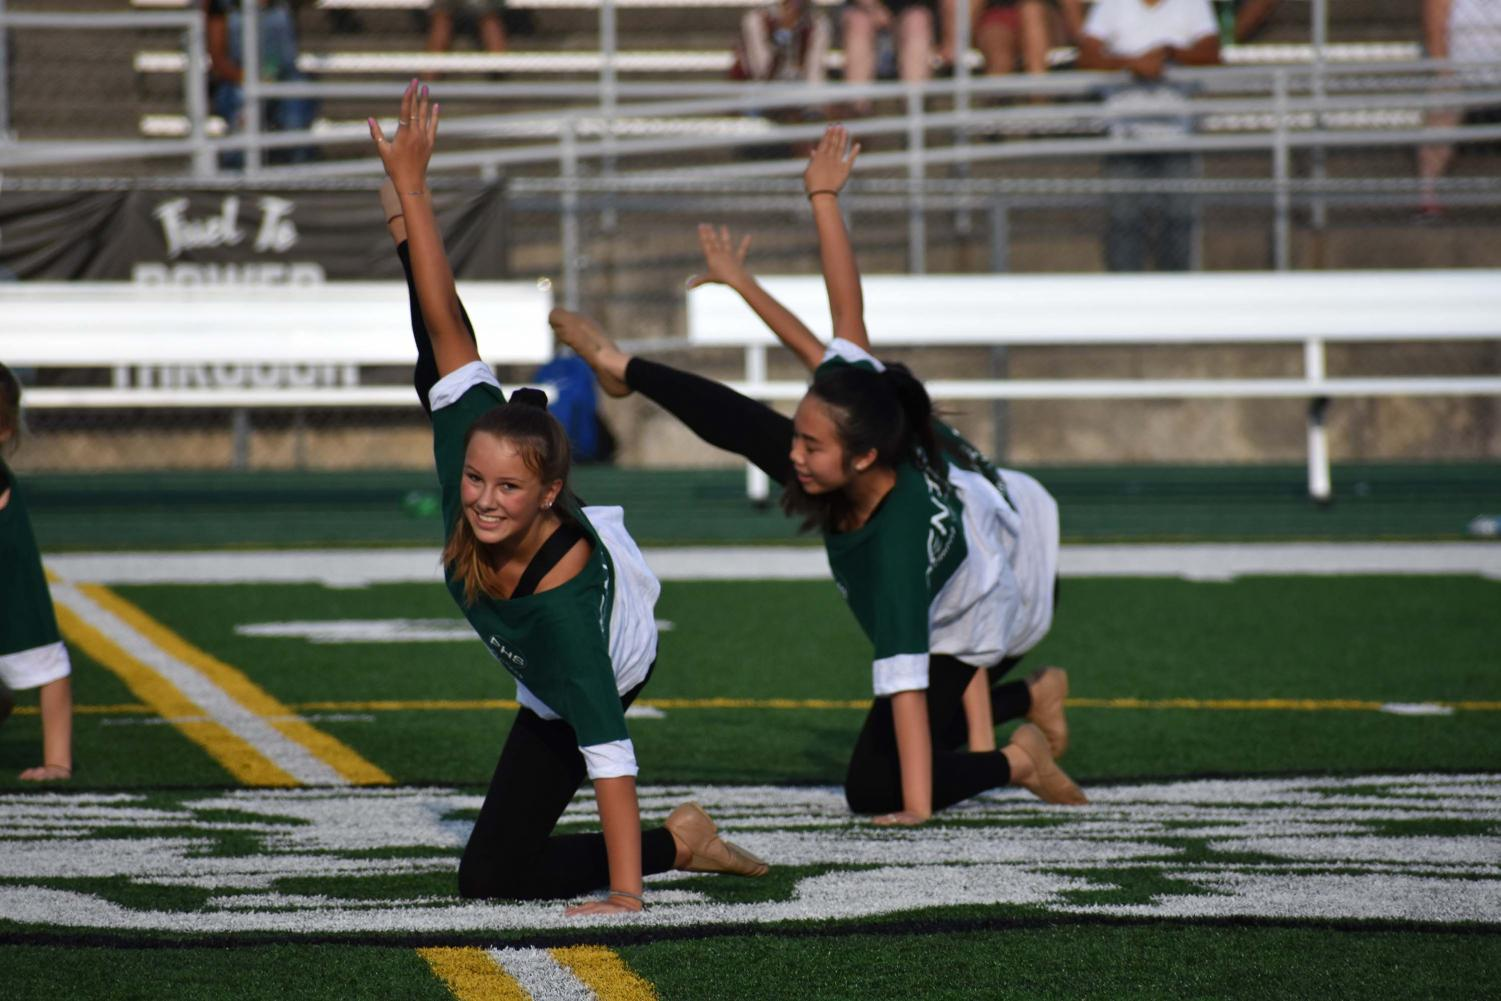 Freshman+Kelly+Loghry+and+sophomore+Crystal+Wong+hit+their+choreography+during+the+combined+JV+and+varsity+green+and+white+night+routine.